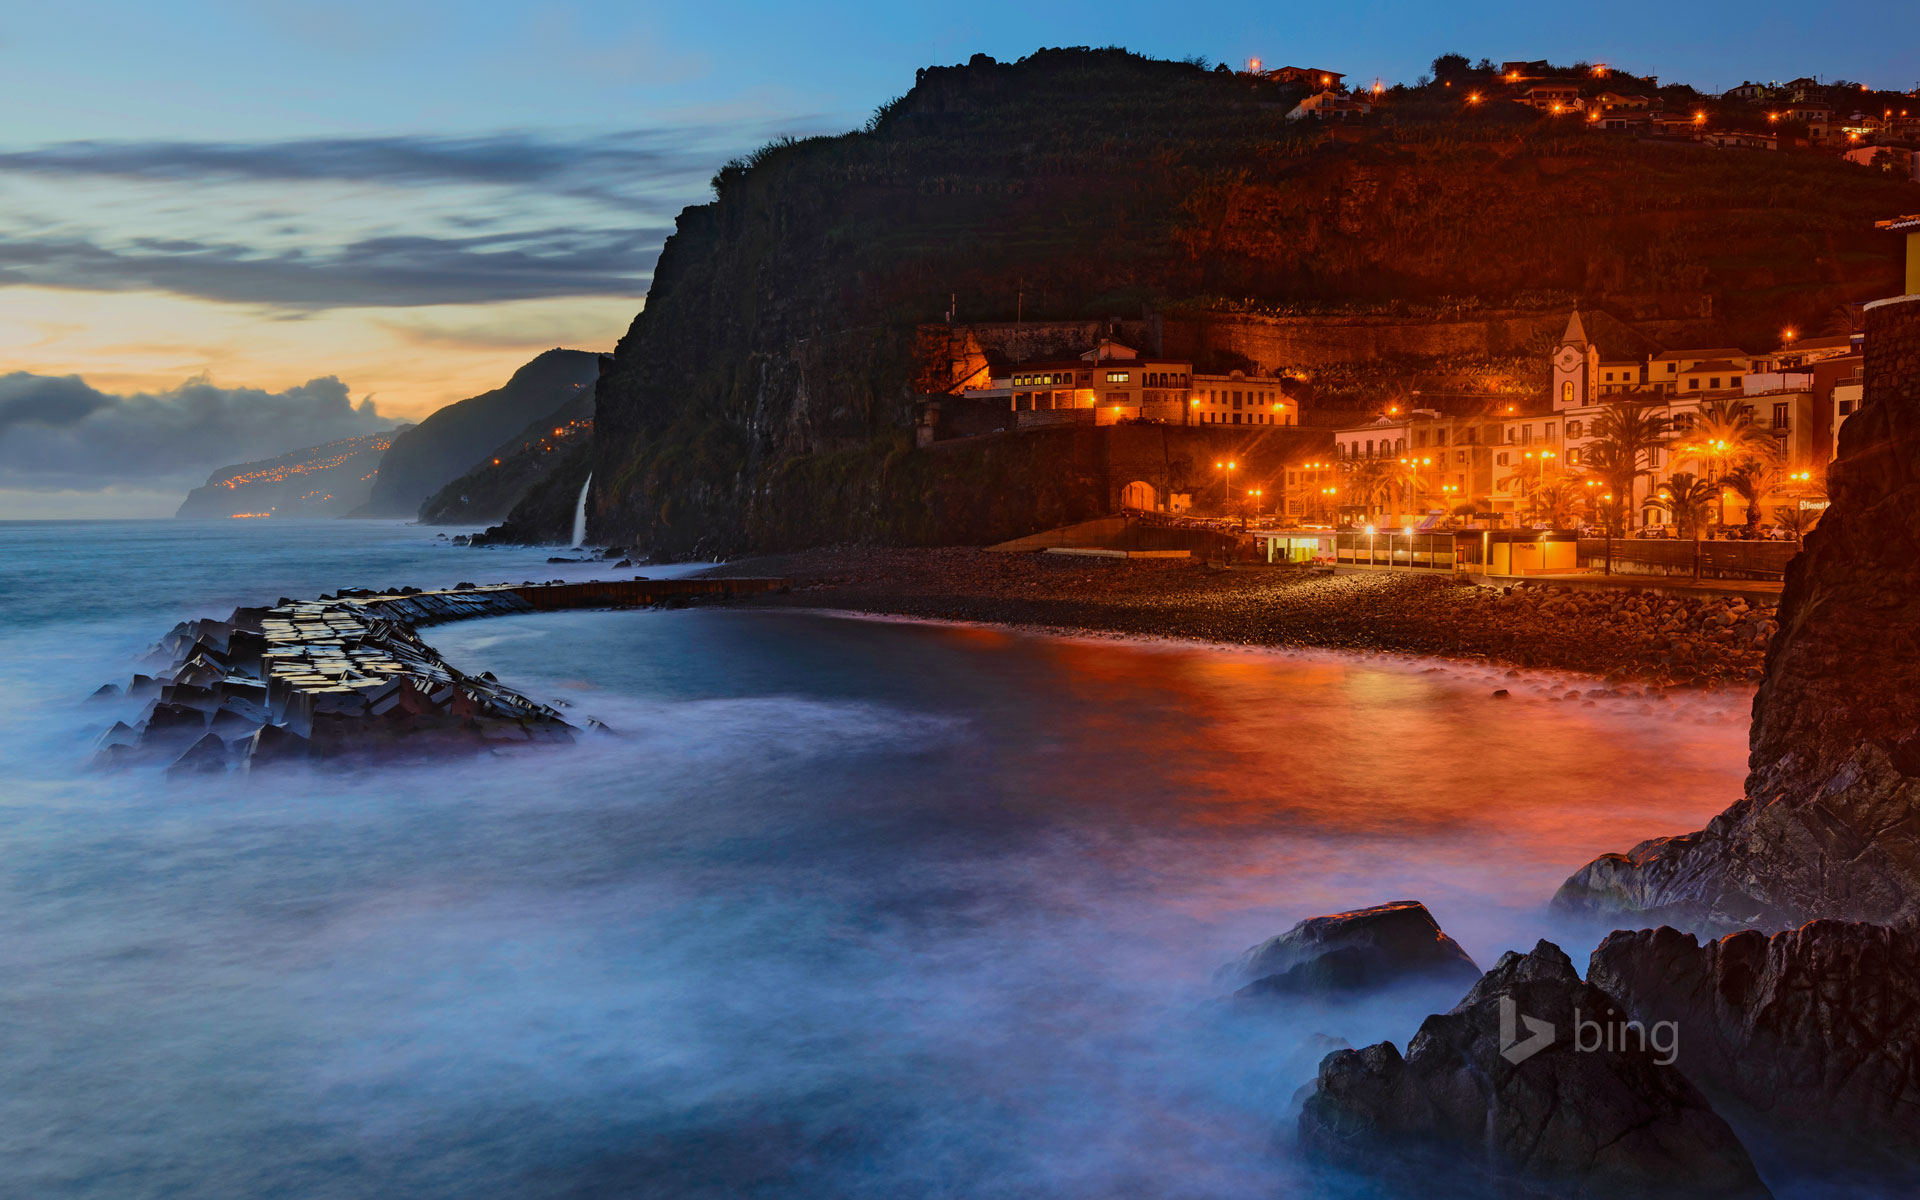 Ponta do Sol, Island of Madeira, Portugal